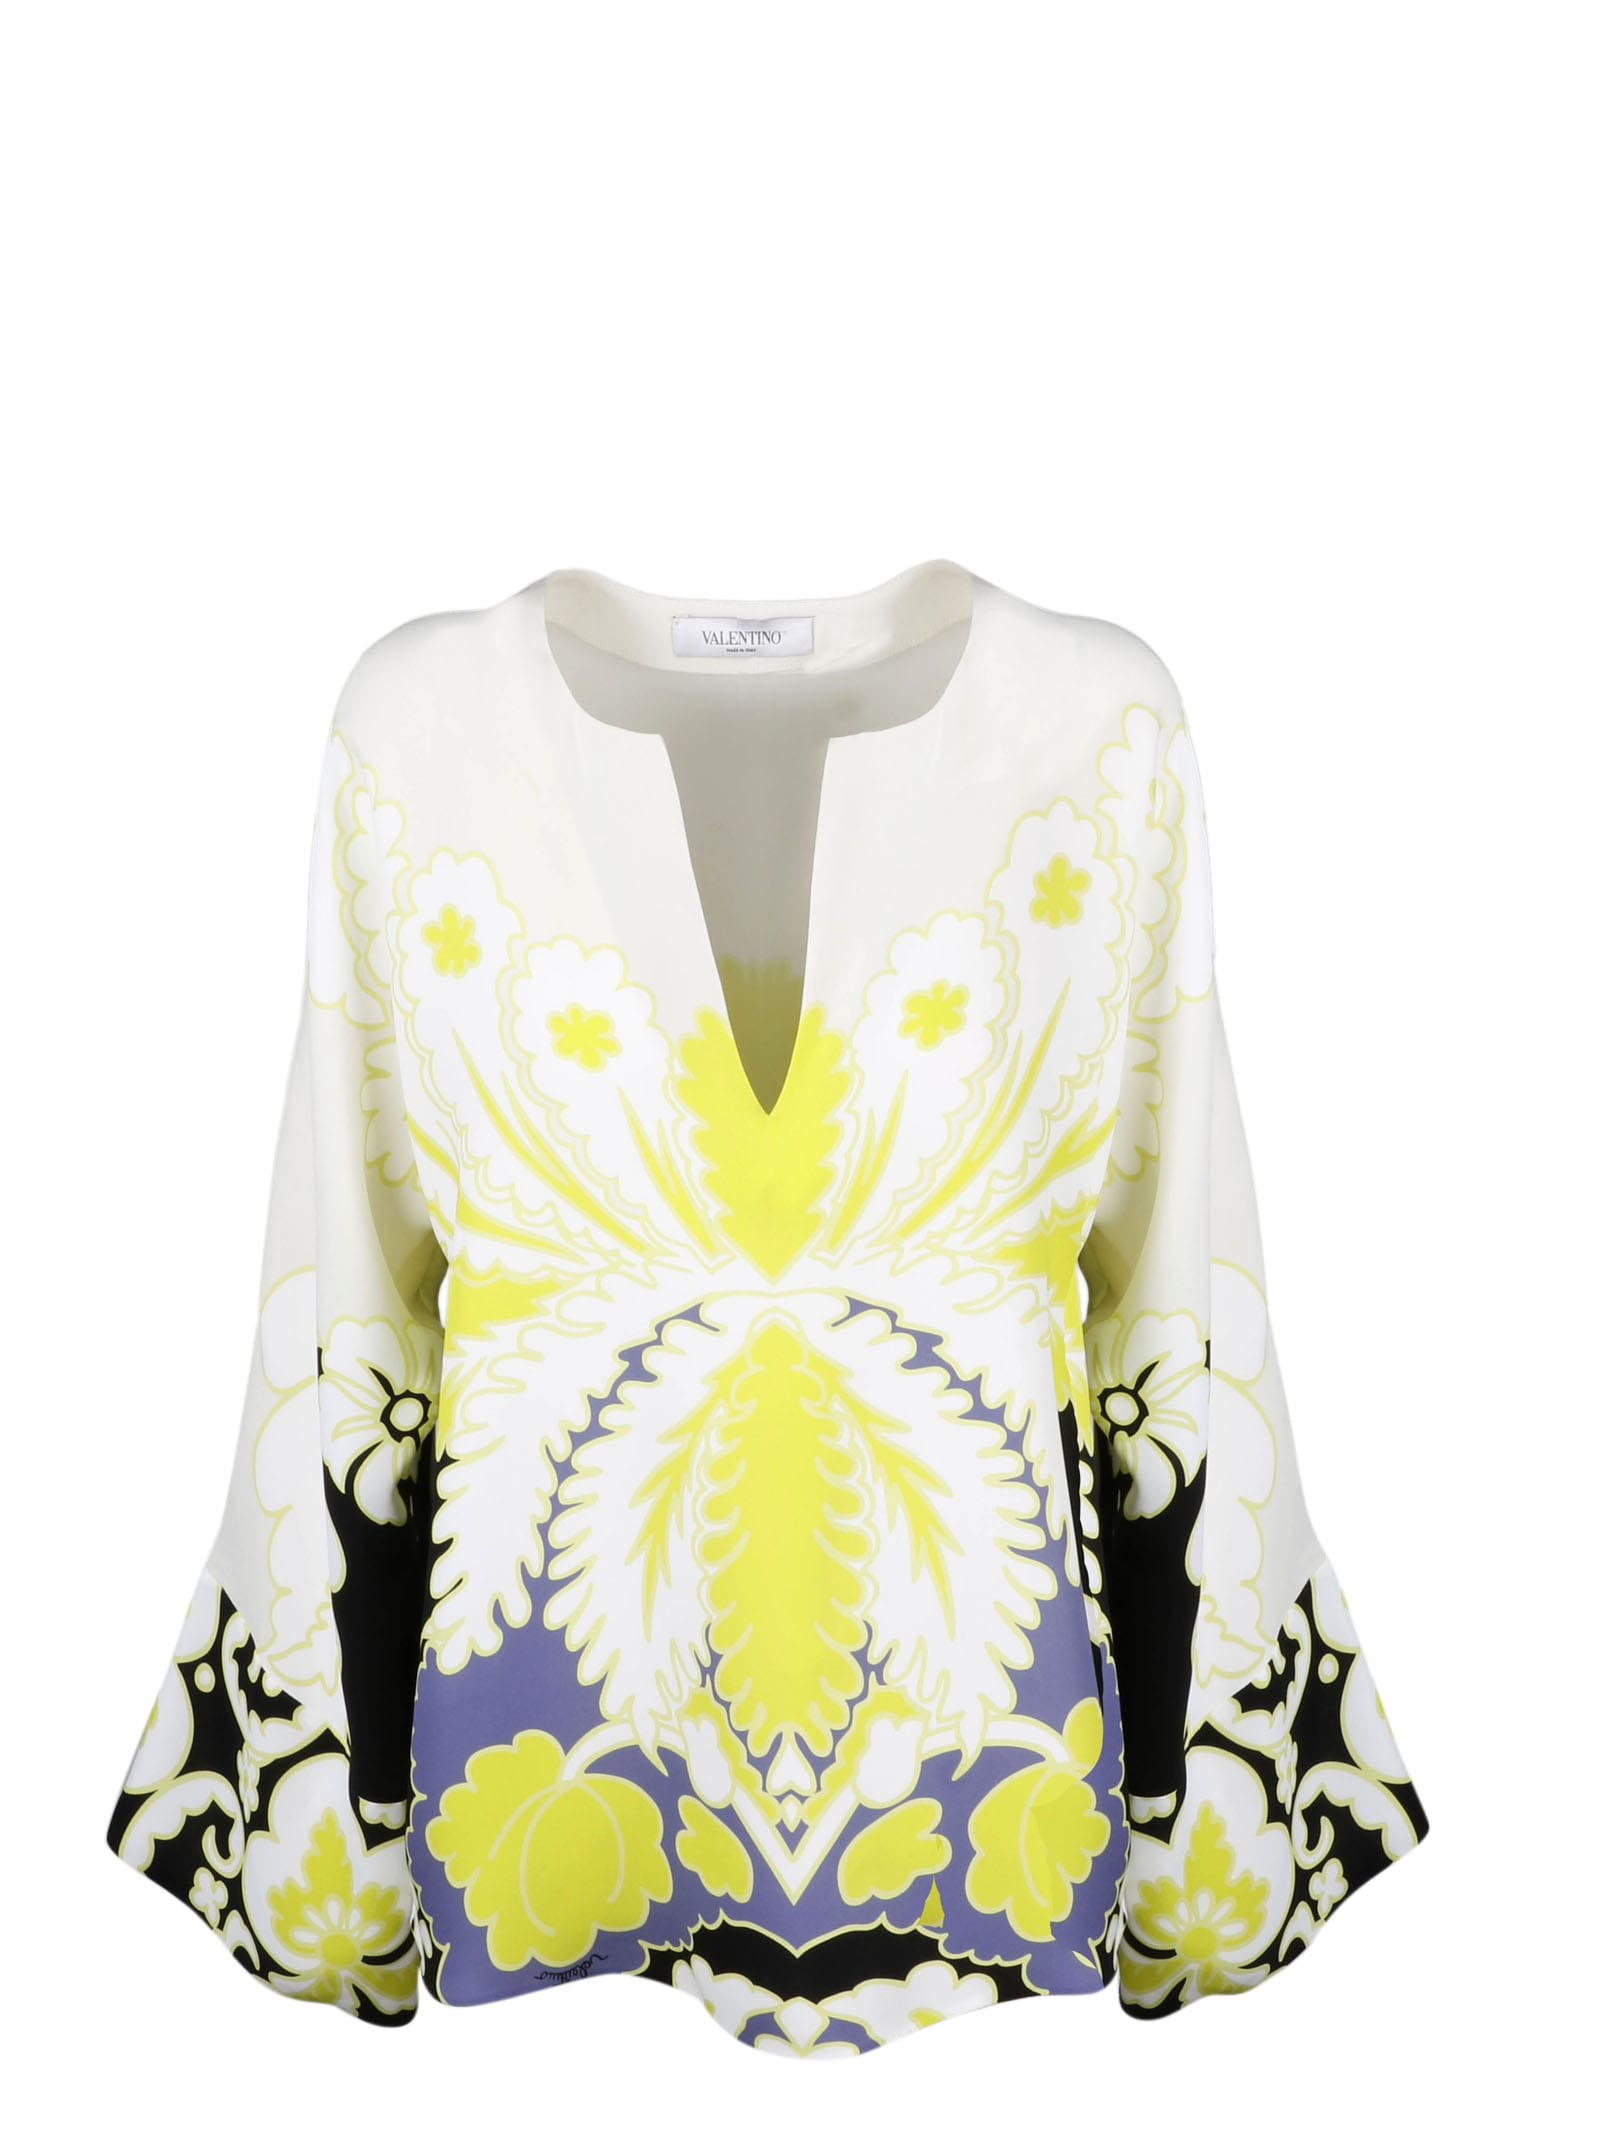 Valentino Couture Cady Top